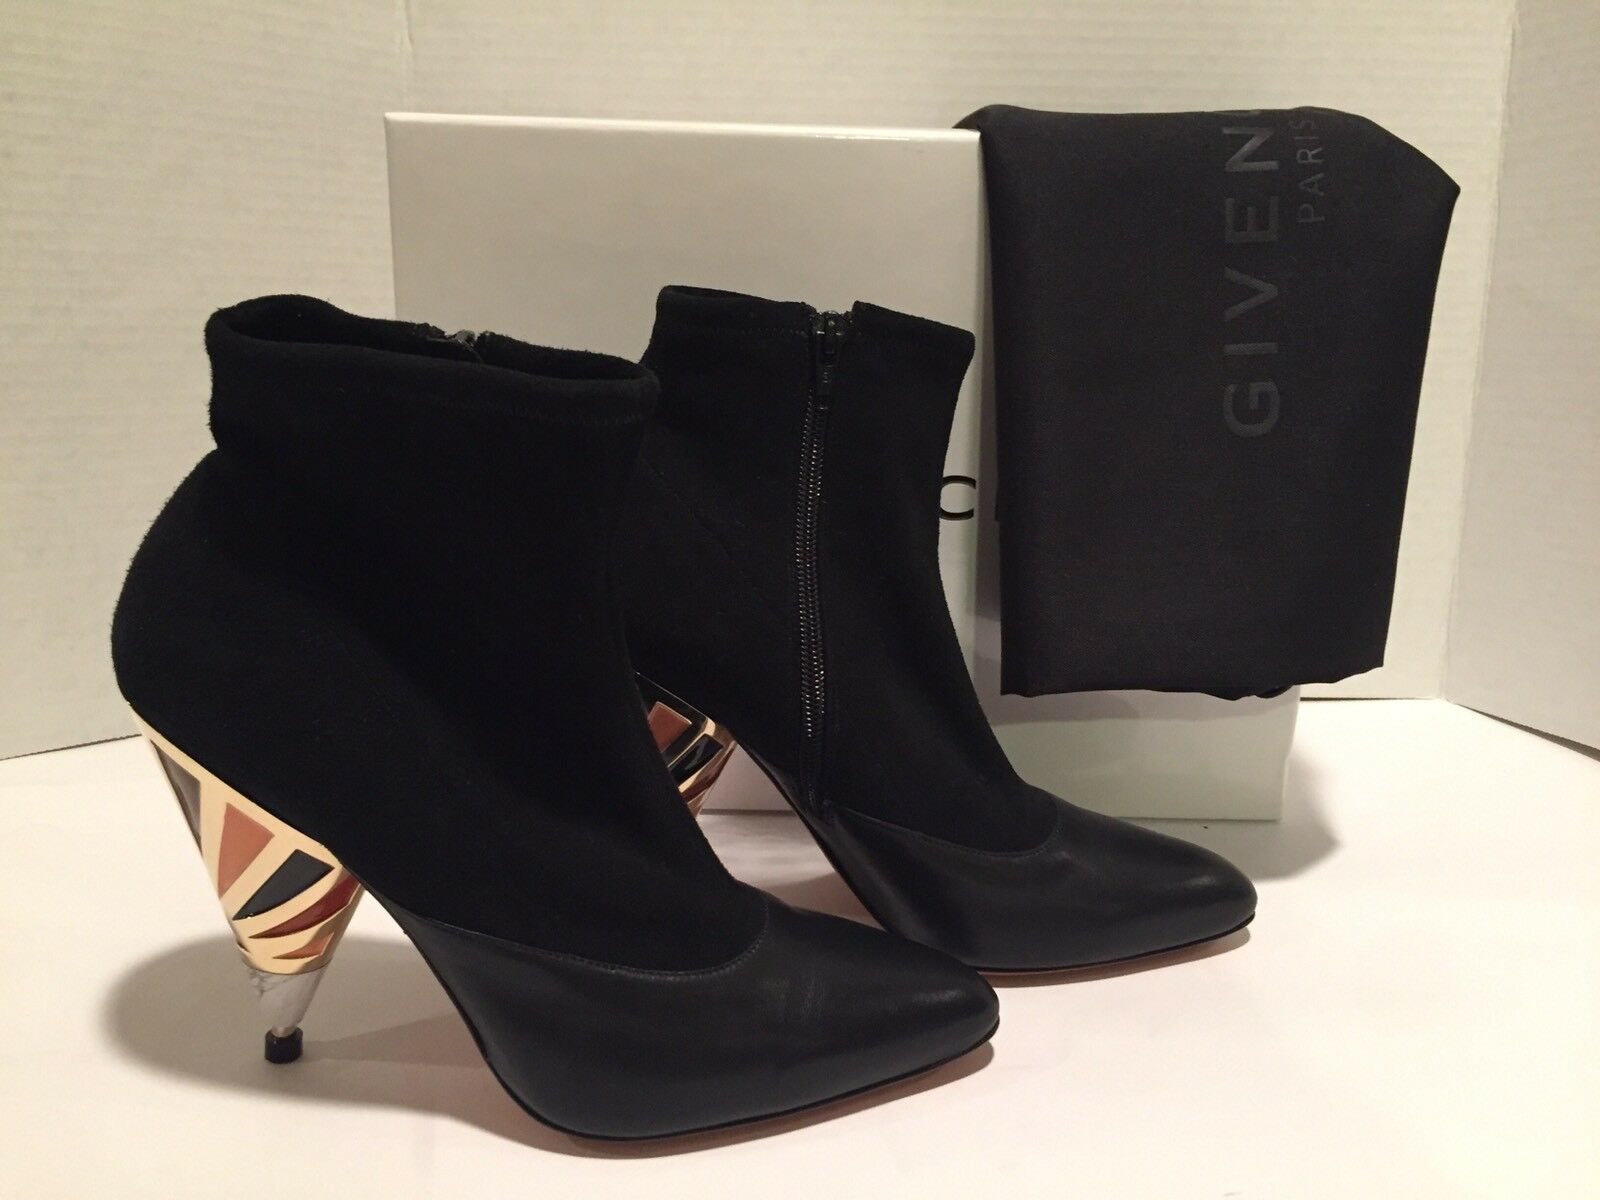 Givenchy Ankle Boots Leather Suede Soft Sock Black 38/ 7.5 1250